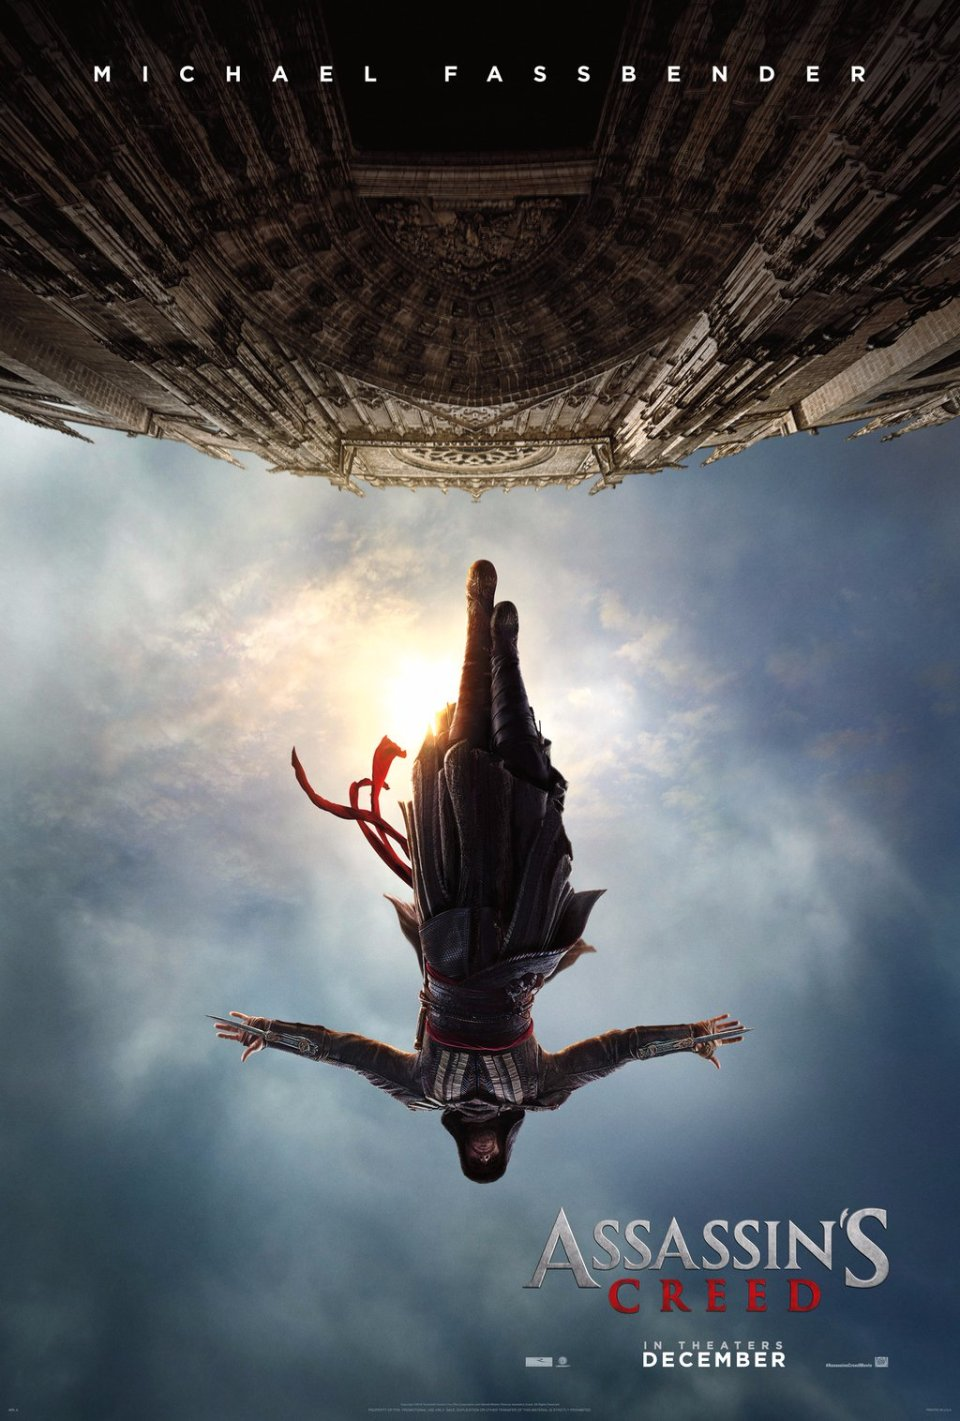 The Assassin's Creed movie